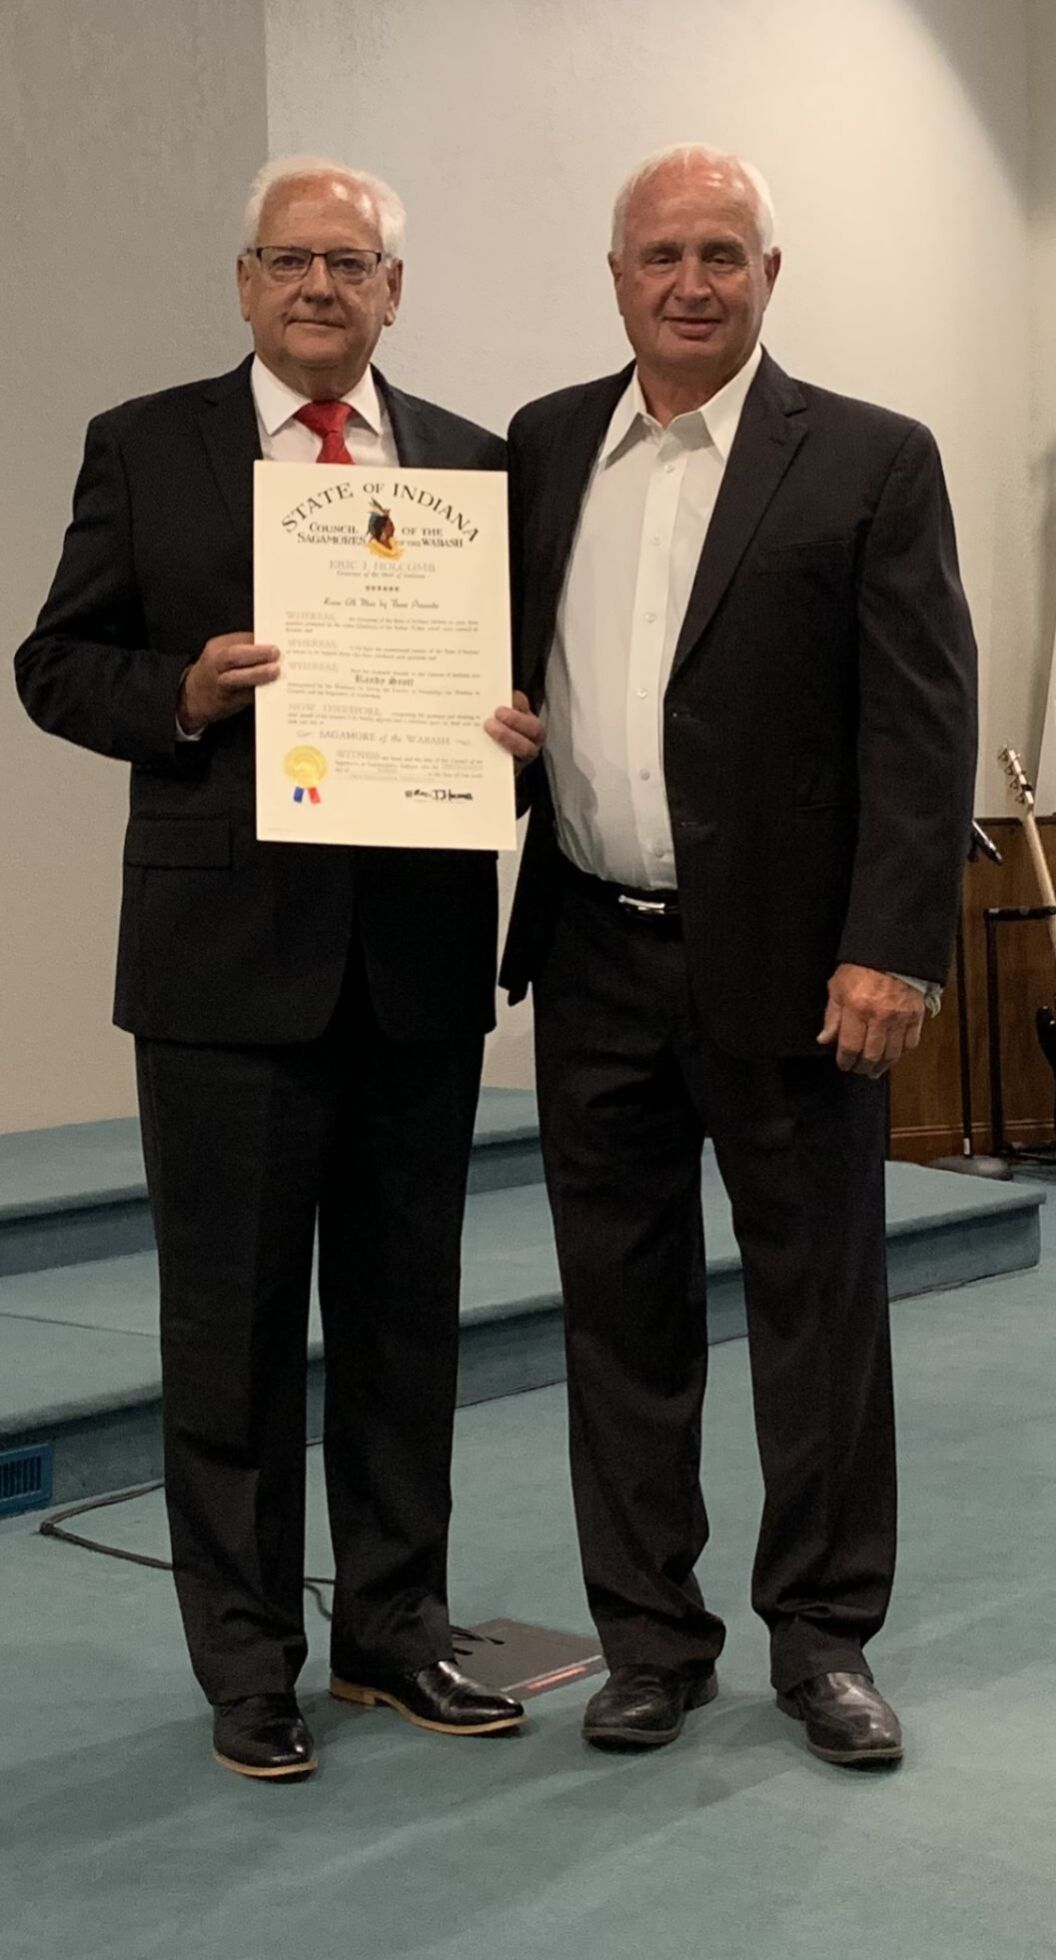 Indiana governor names Merrillville pastor a Sagamore of the Wabash